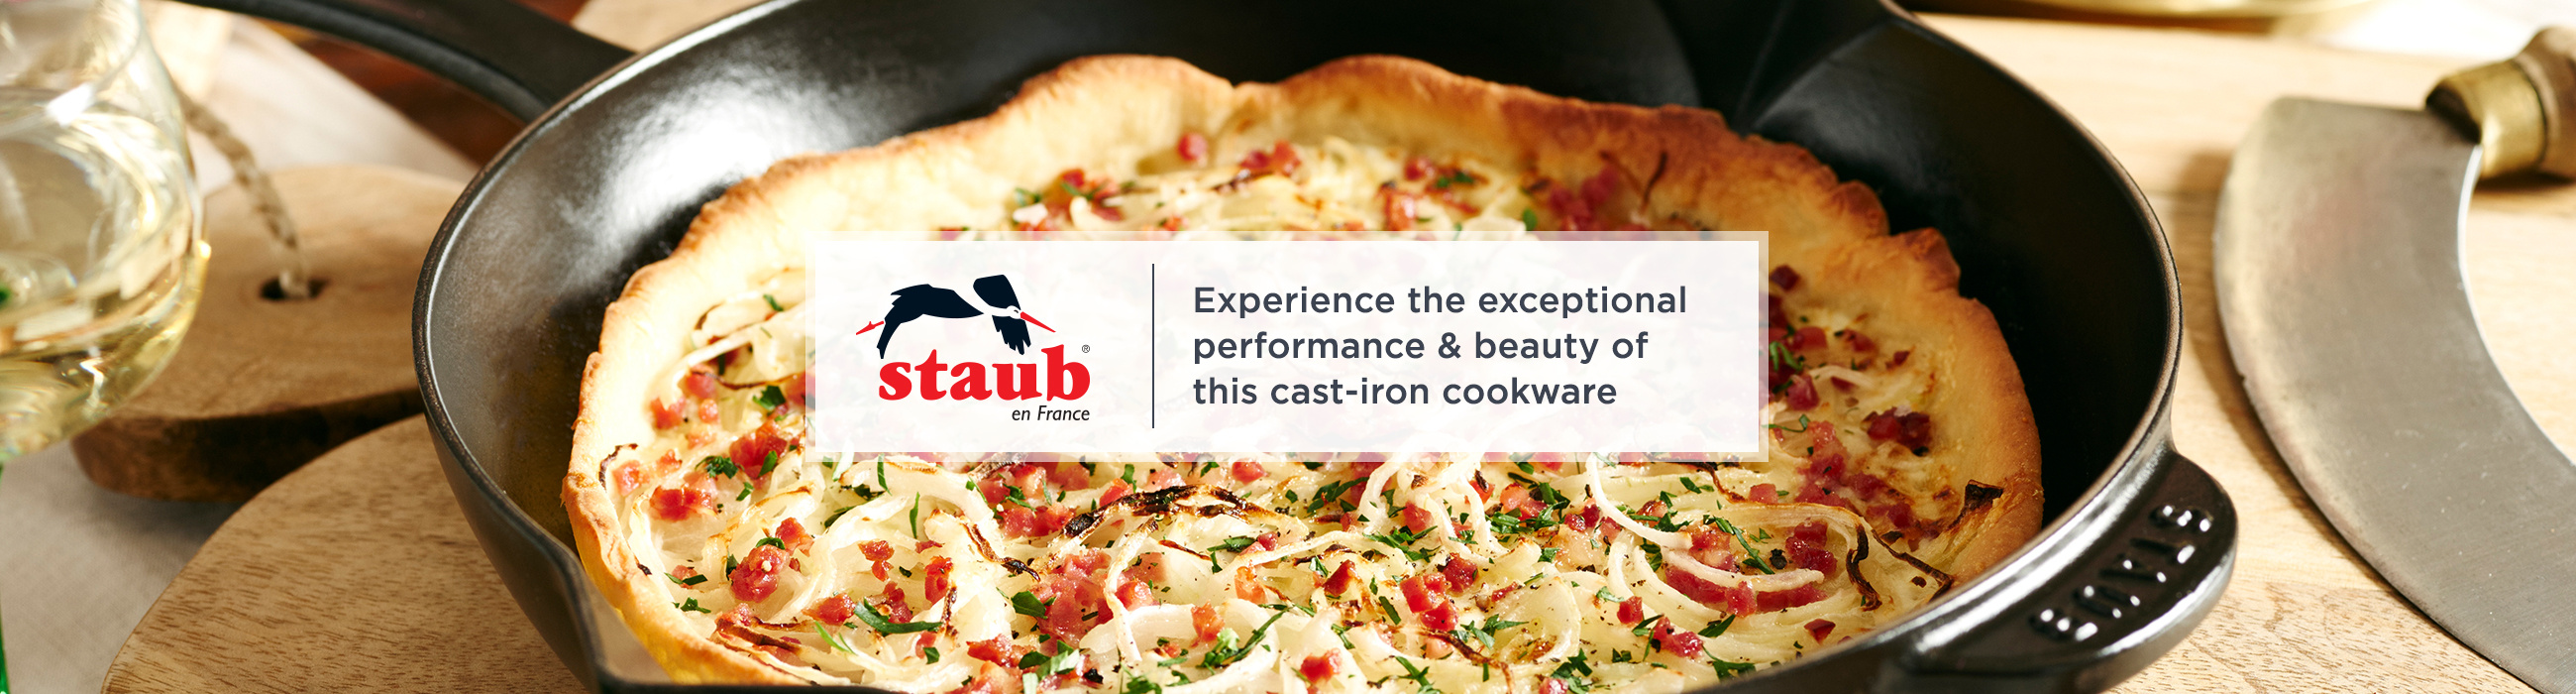 Staub  Experience the exceptional performance & beauty of this cast-iron cookware